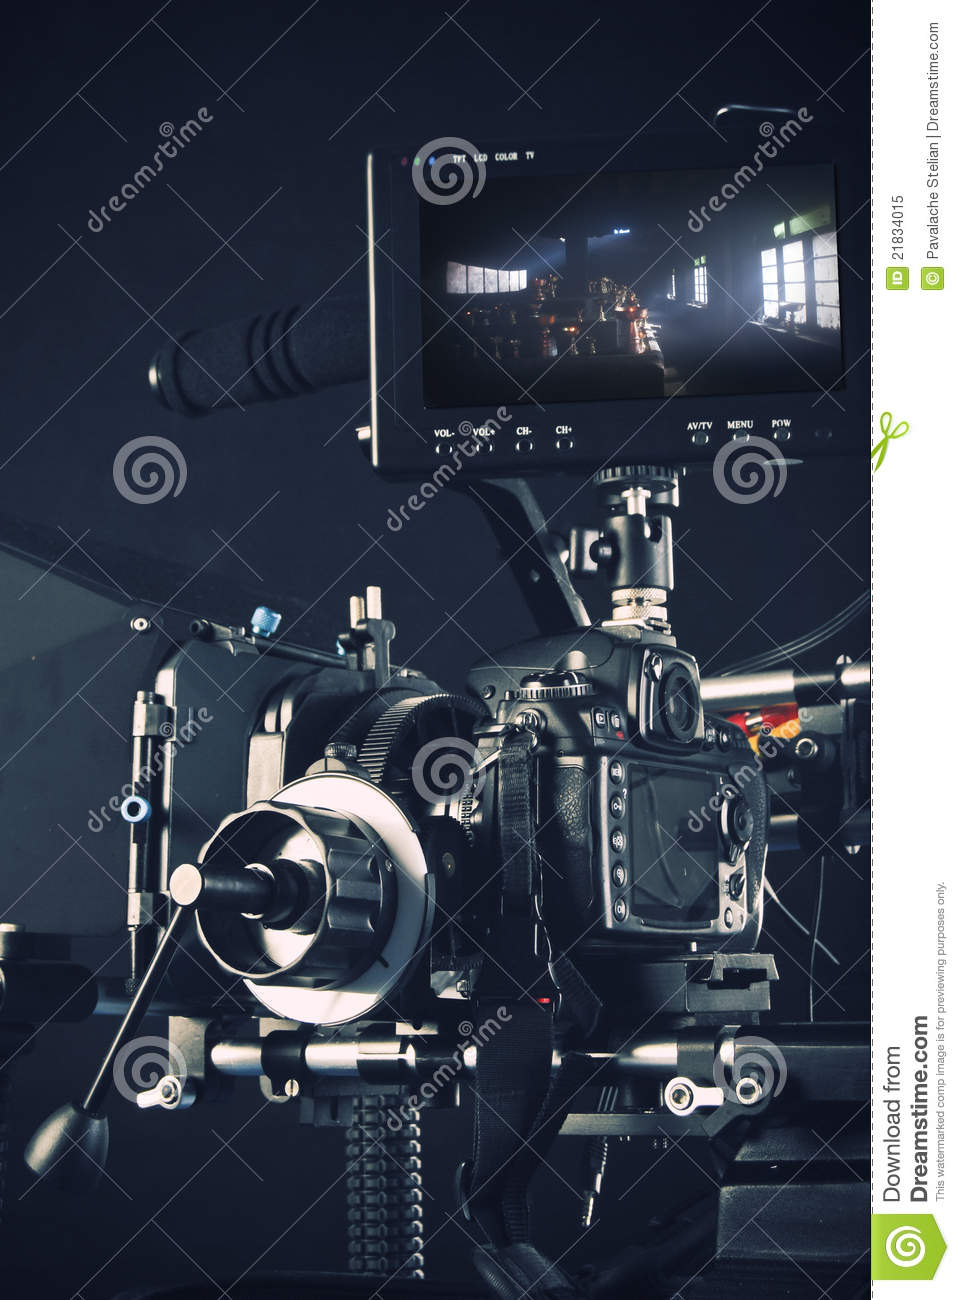 System of a video camera